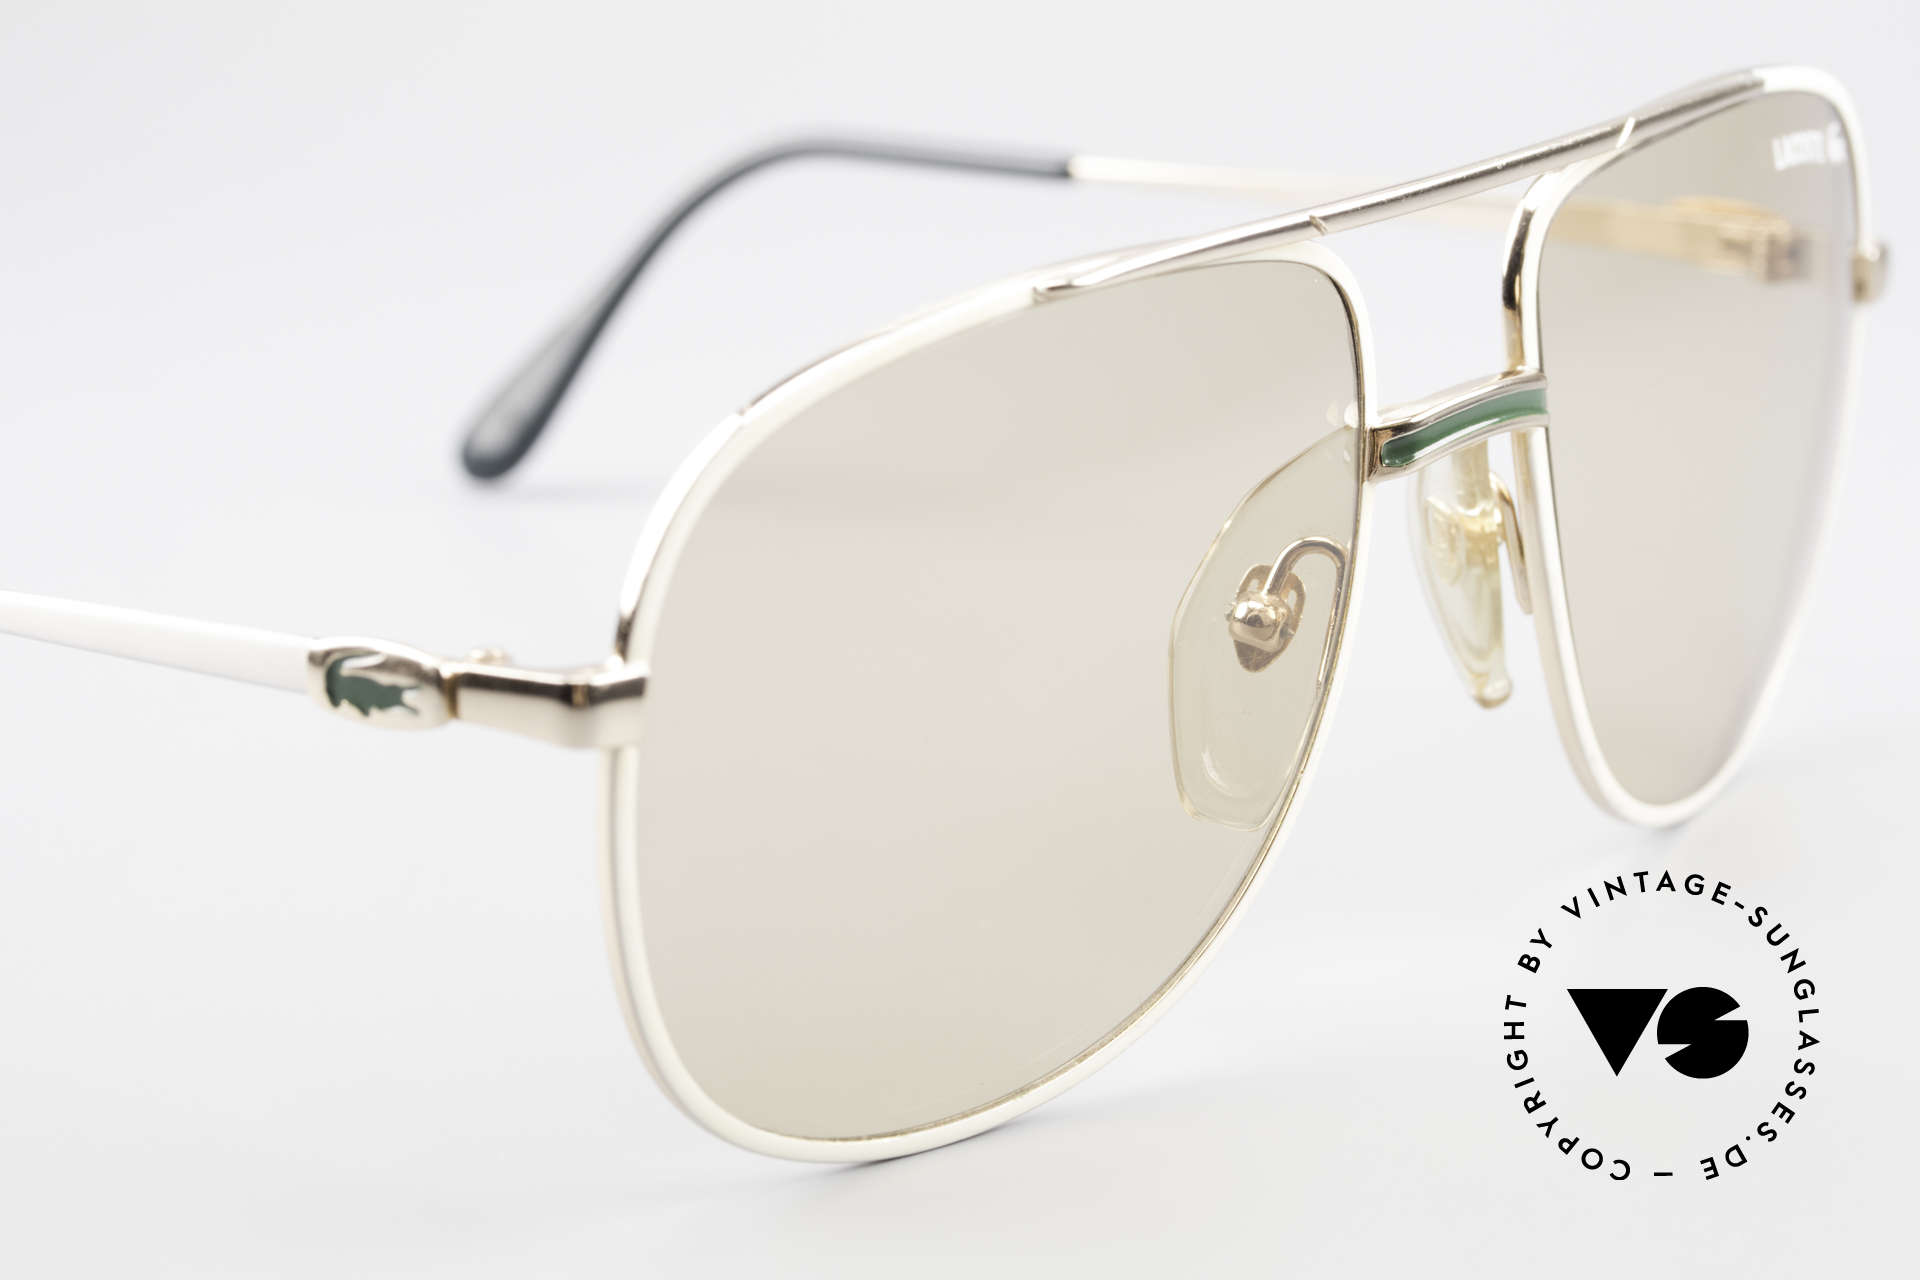 Lacoste 101 Lacoste Changeable Lenses, model 101 = the downright classic by Lacoste, a legend!, Made for Men